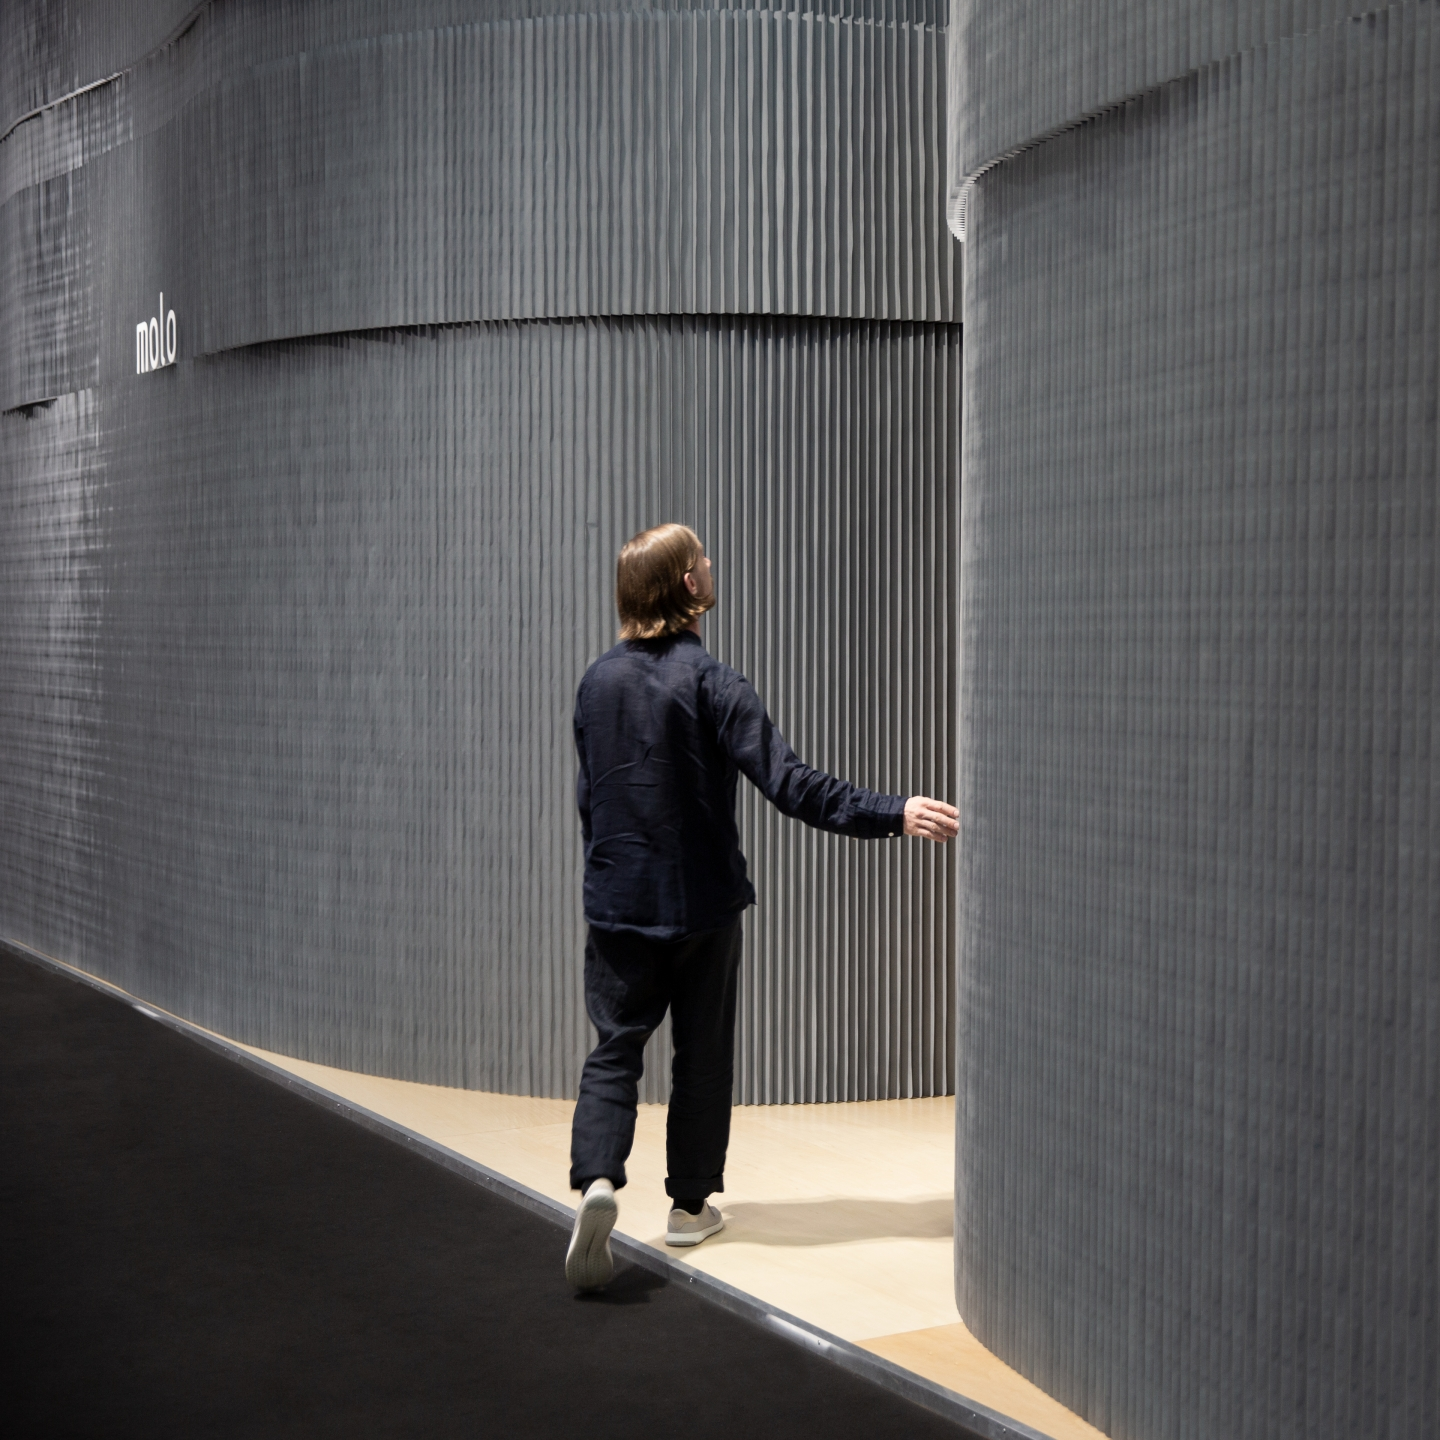 molo's installation at ICFF featured custom gray softwalls wall partitions.